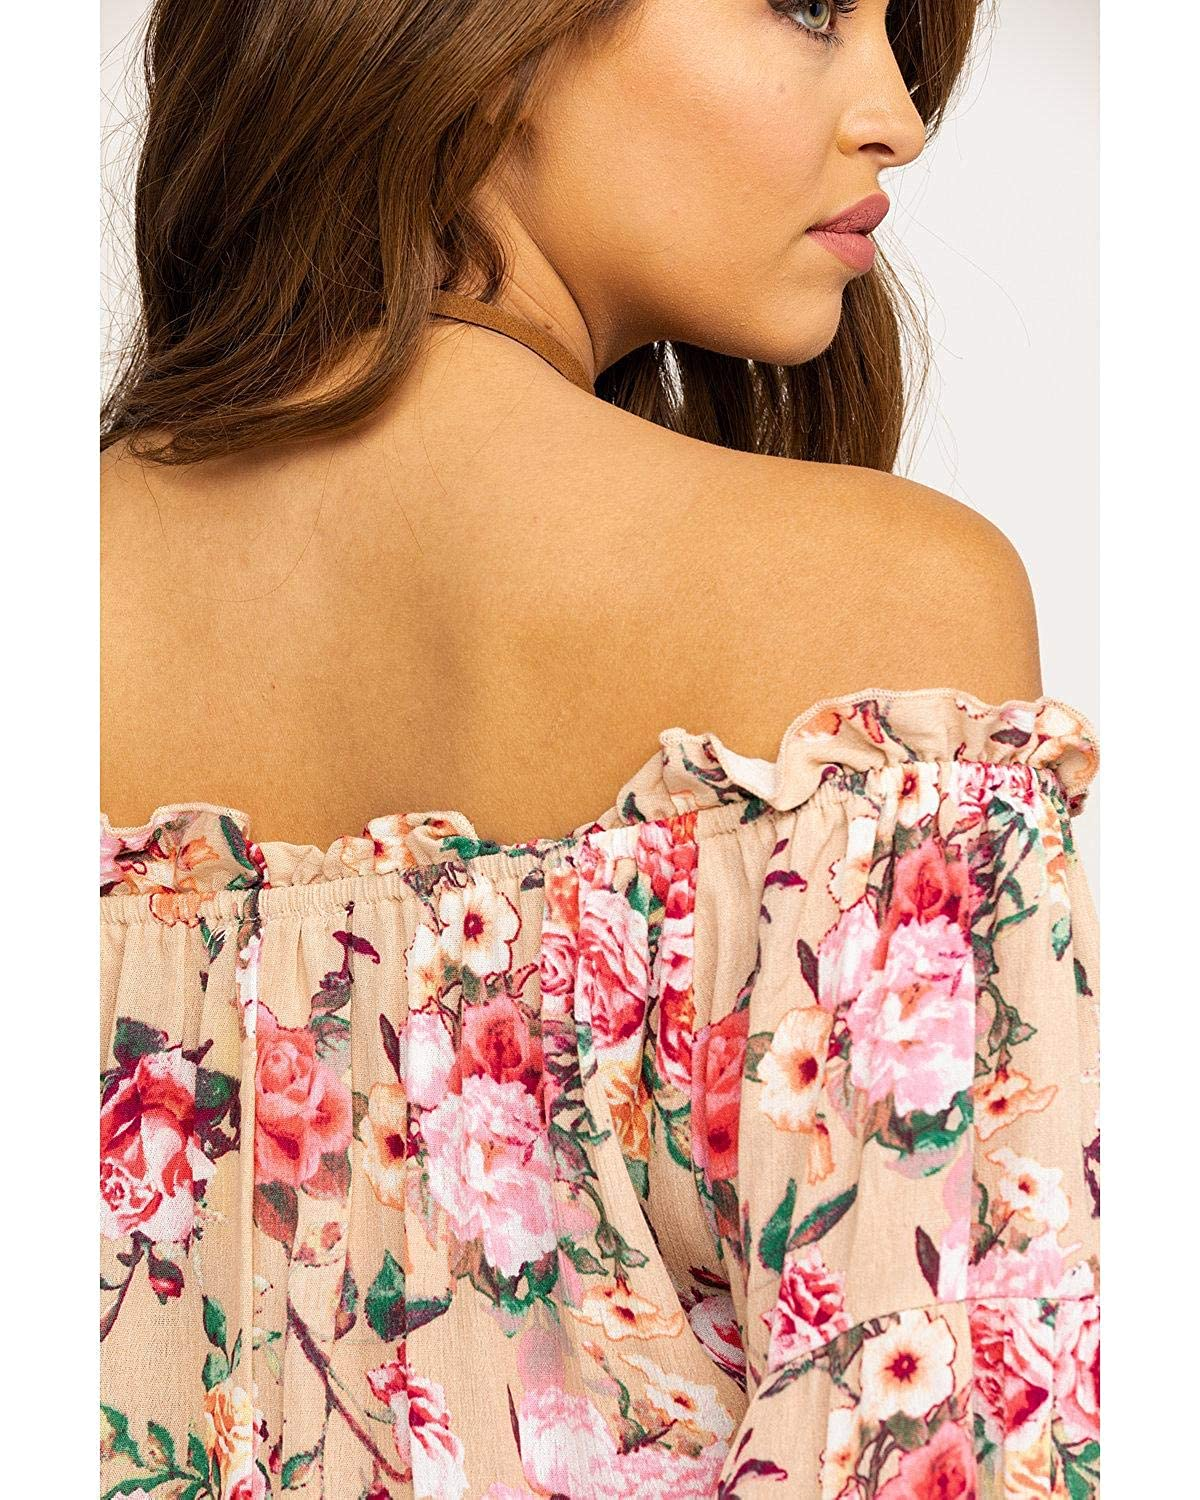 aae48d9c0ab42 Panhandle Women s Red Label by Coral Floral Crinkle Off Shoulder Bell  Sleeve Top at Amazon Women s Clothing store